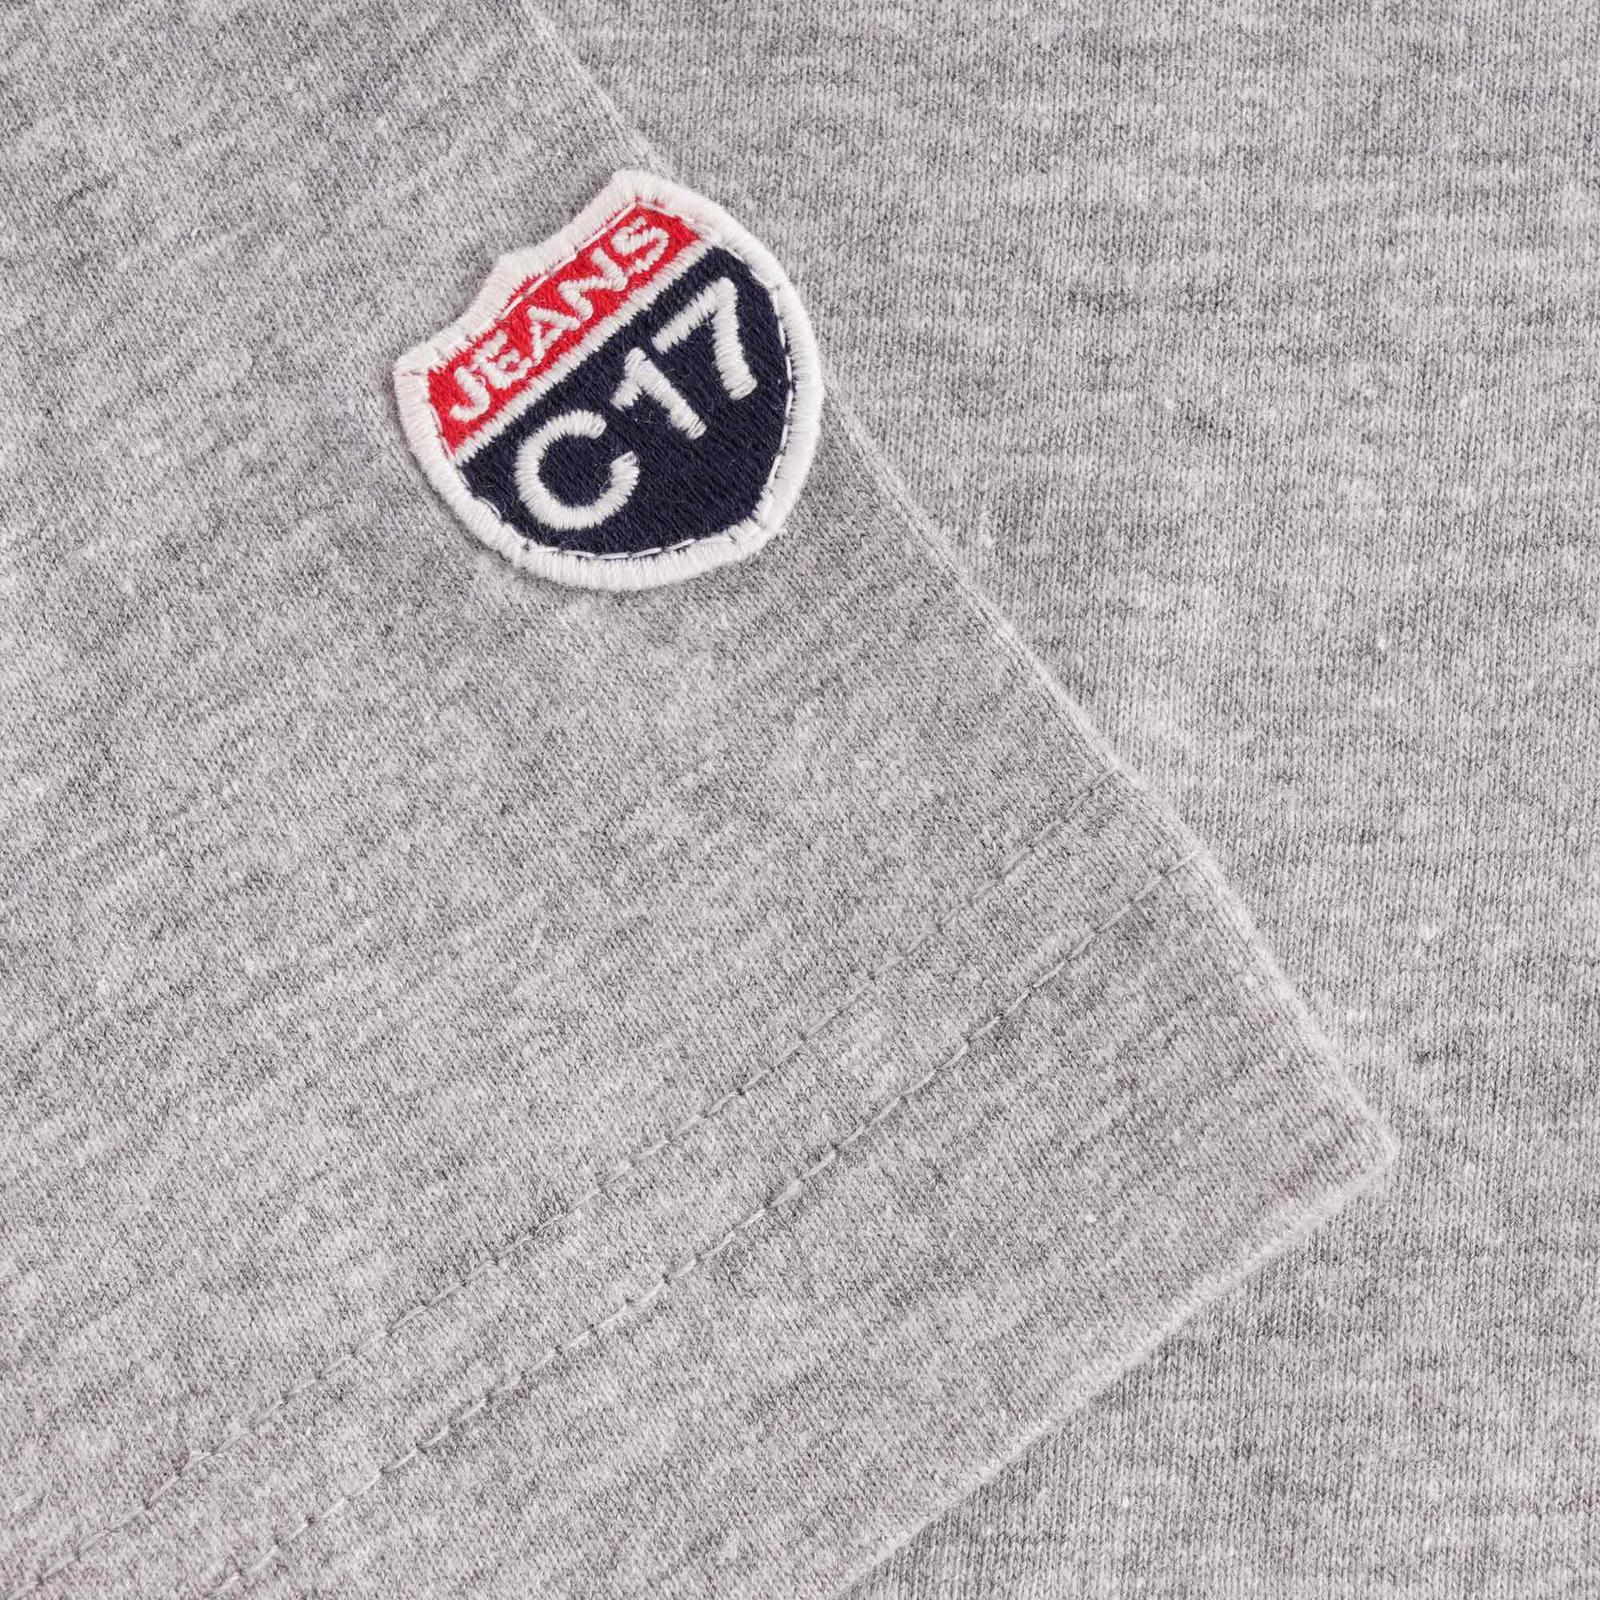 Close up of grey t-shirt